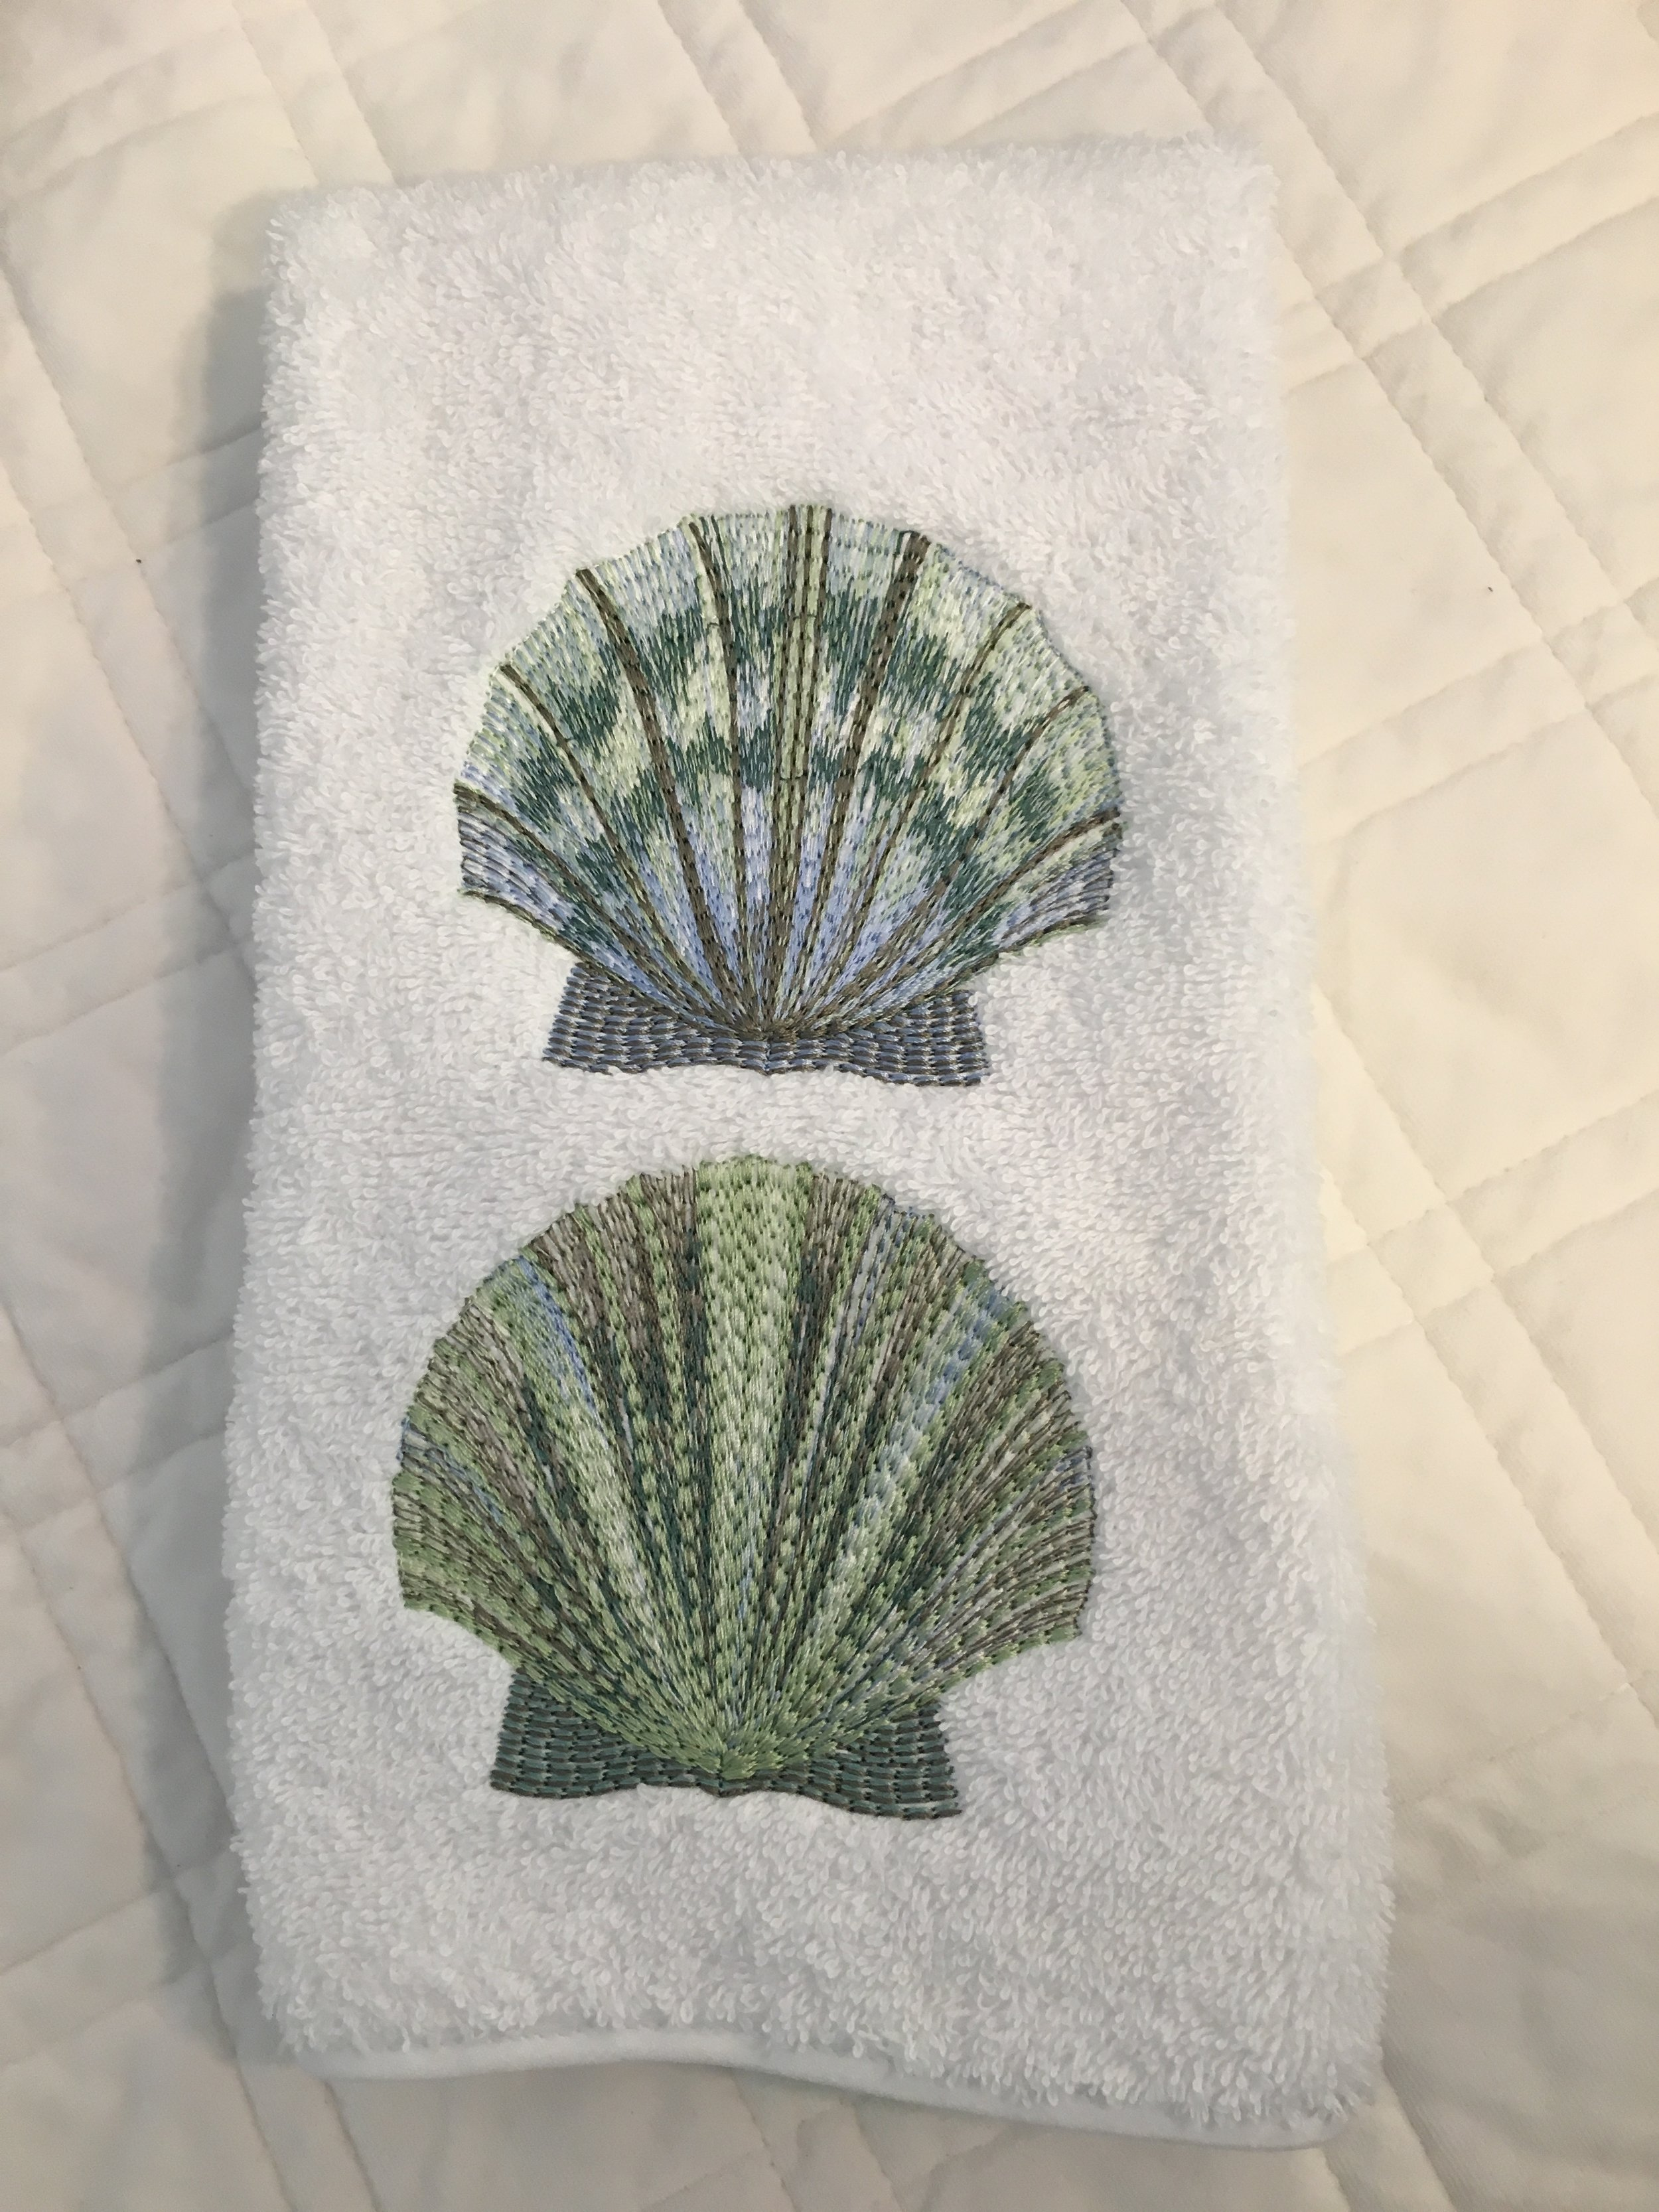 23279 - Scallop Shell Hand Towel (2) - $36/each